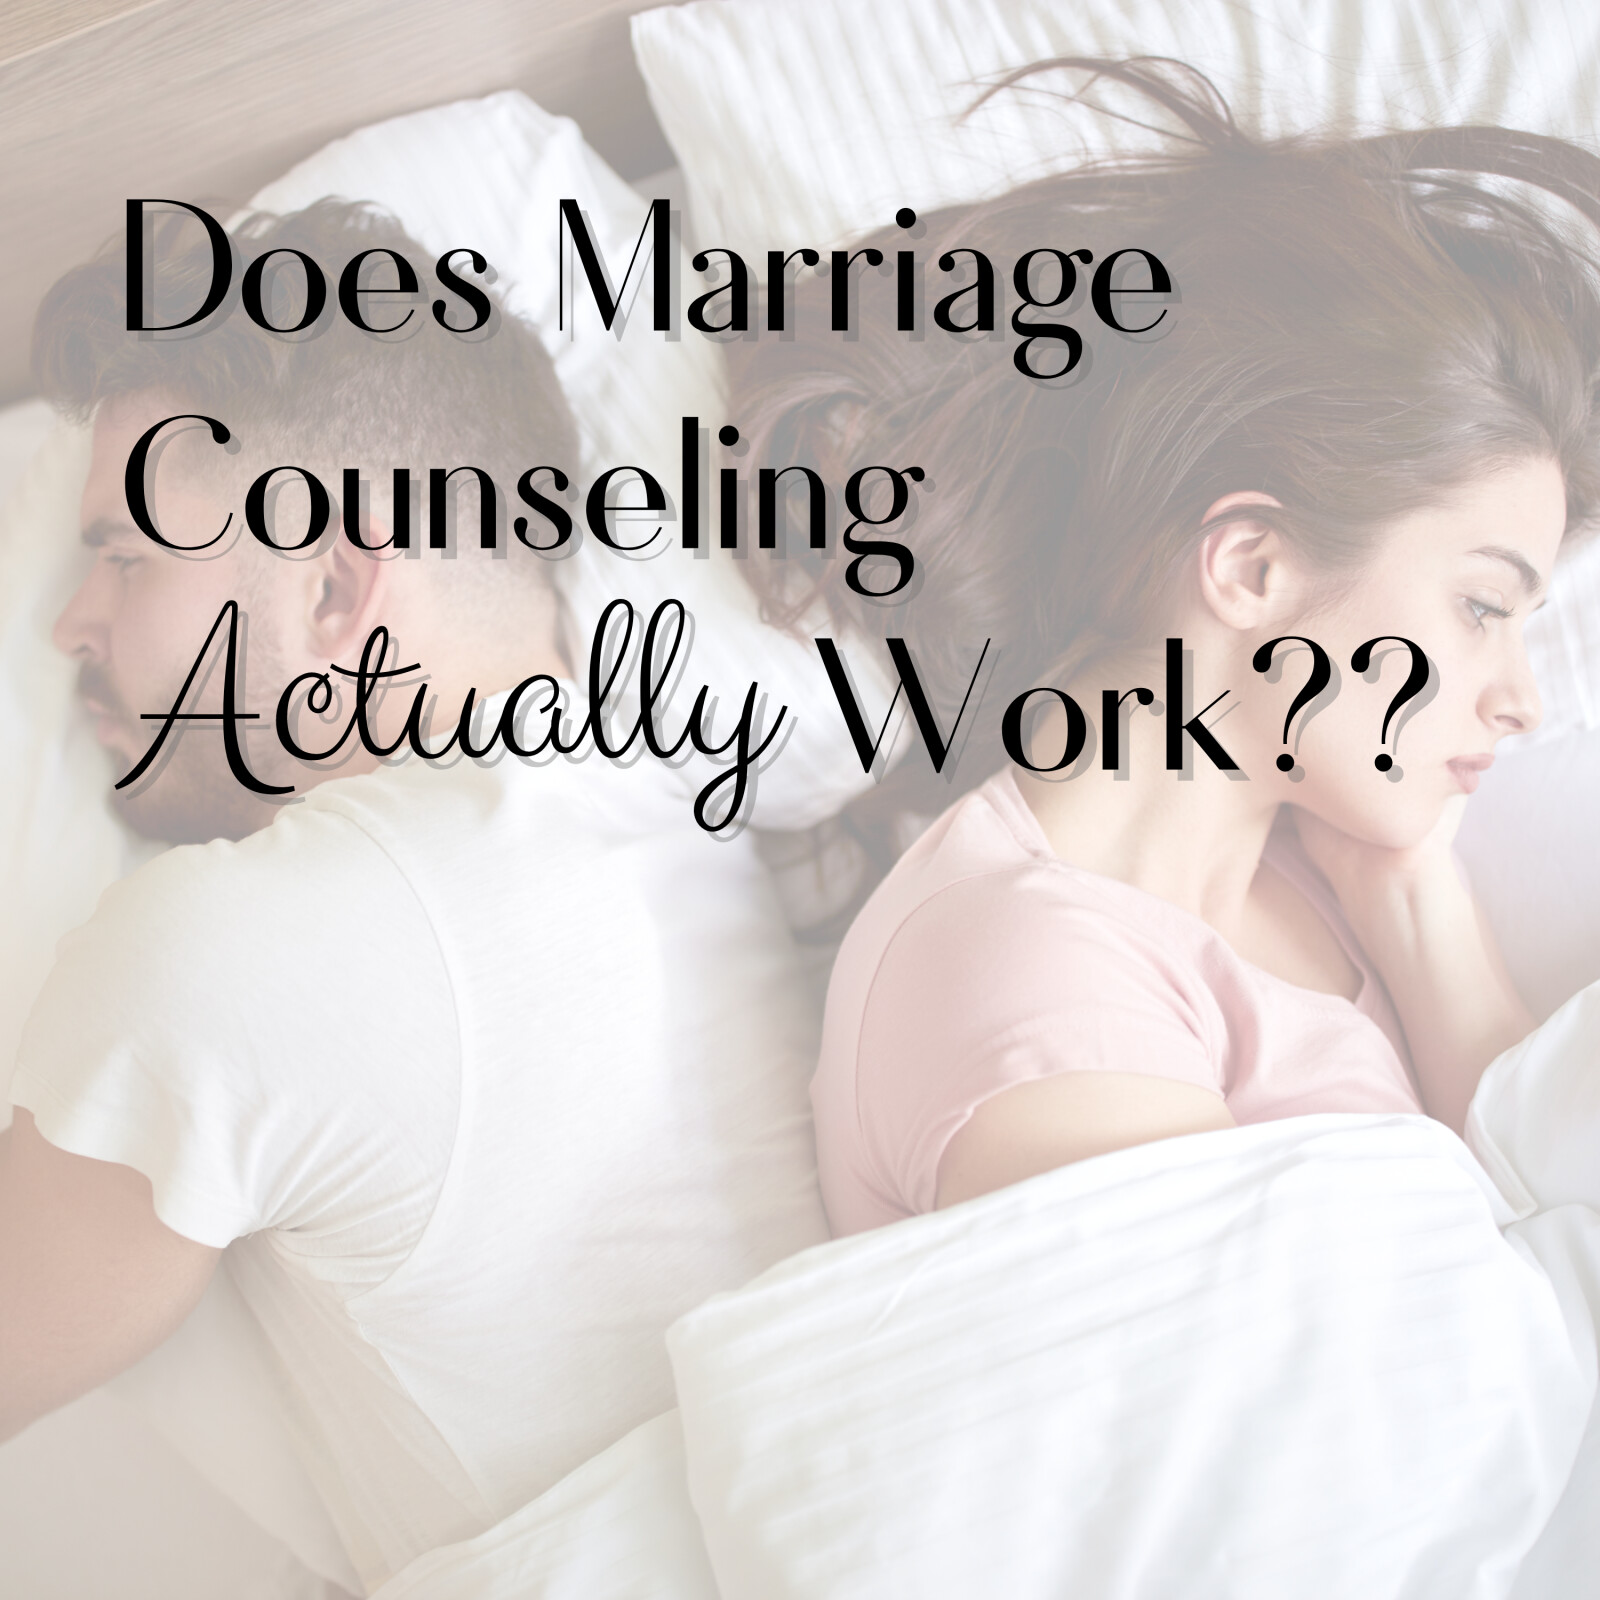 Does Marriage Counseling Actually Work??